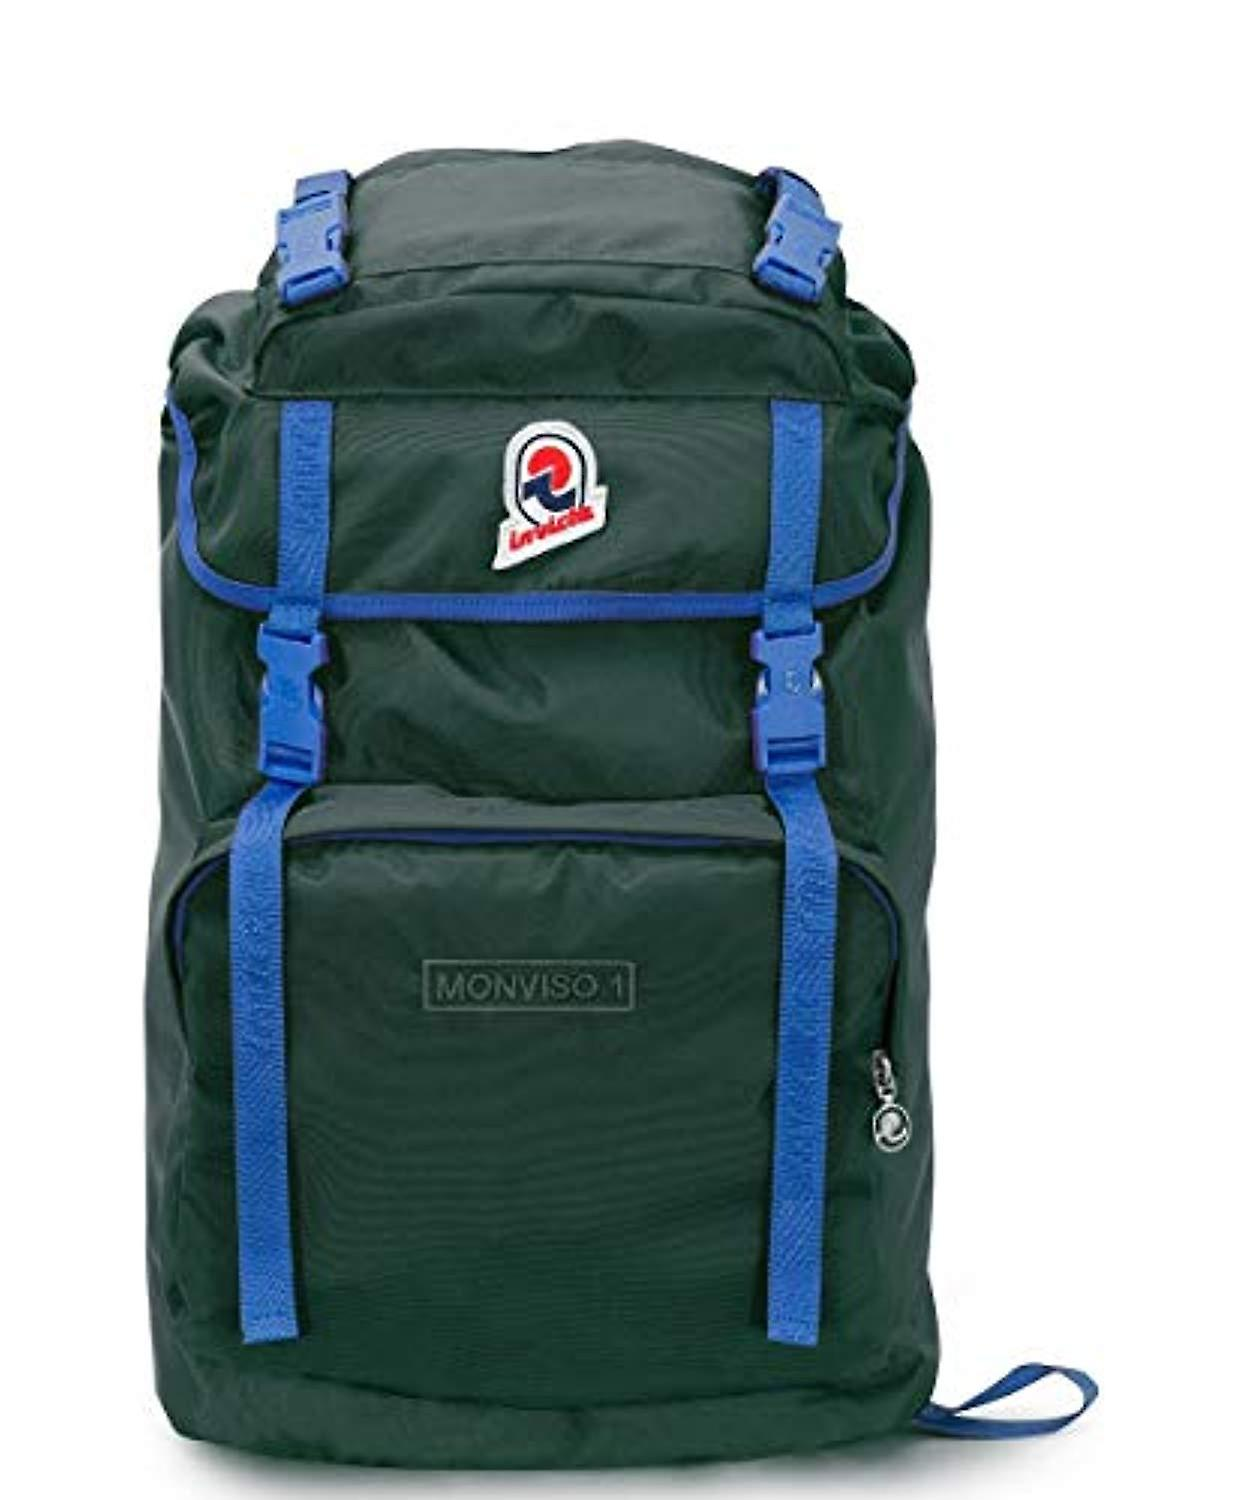 Invicta Backpack Monviso 1 Backpack Casual - 50 cm - 34 liters - Green